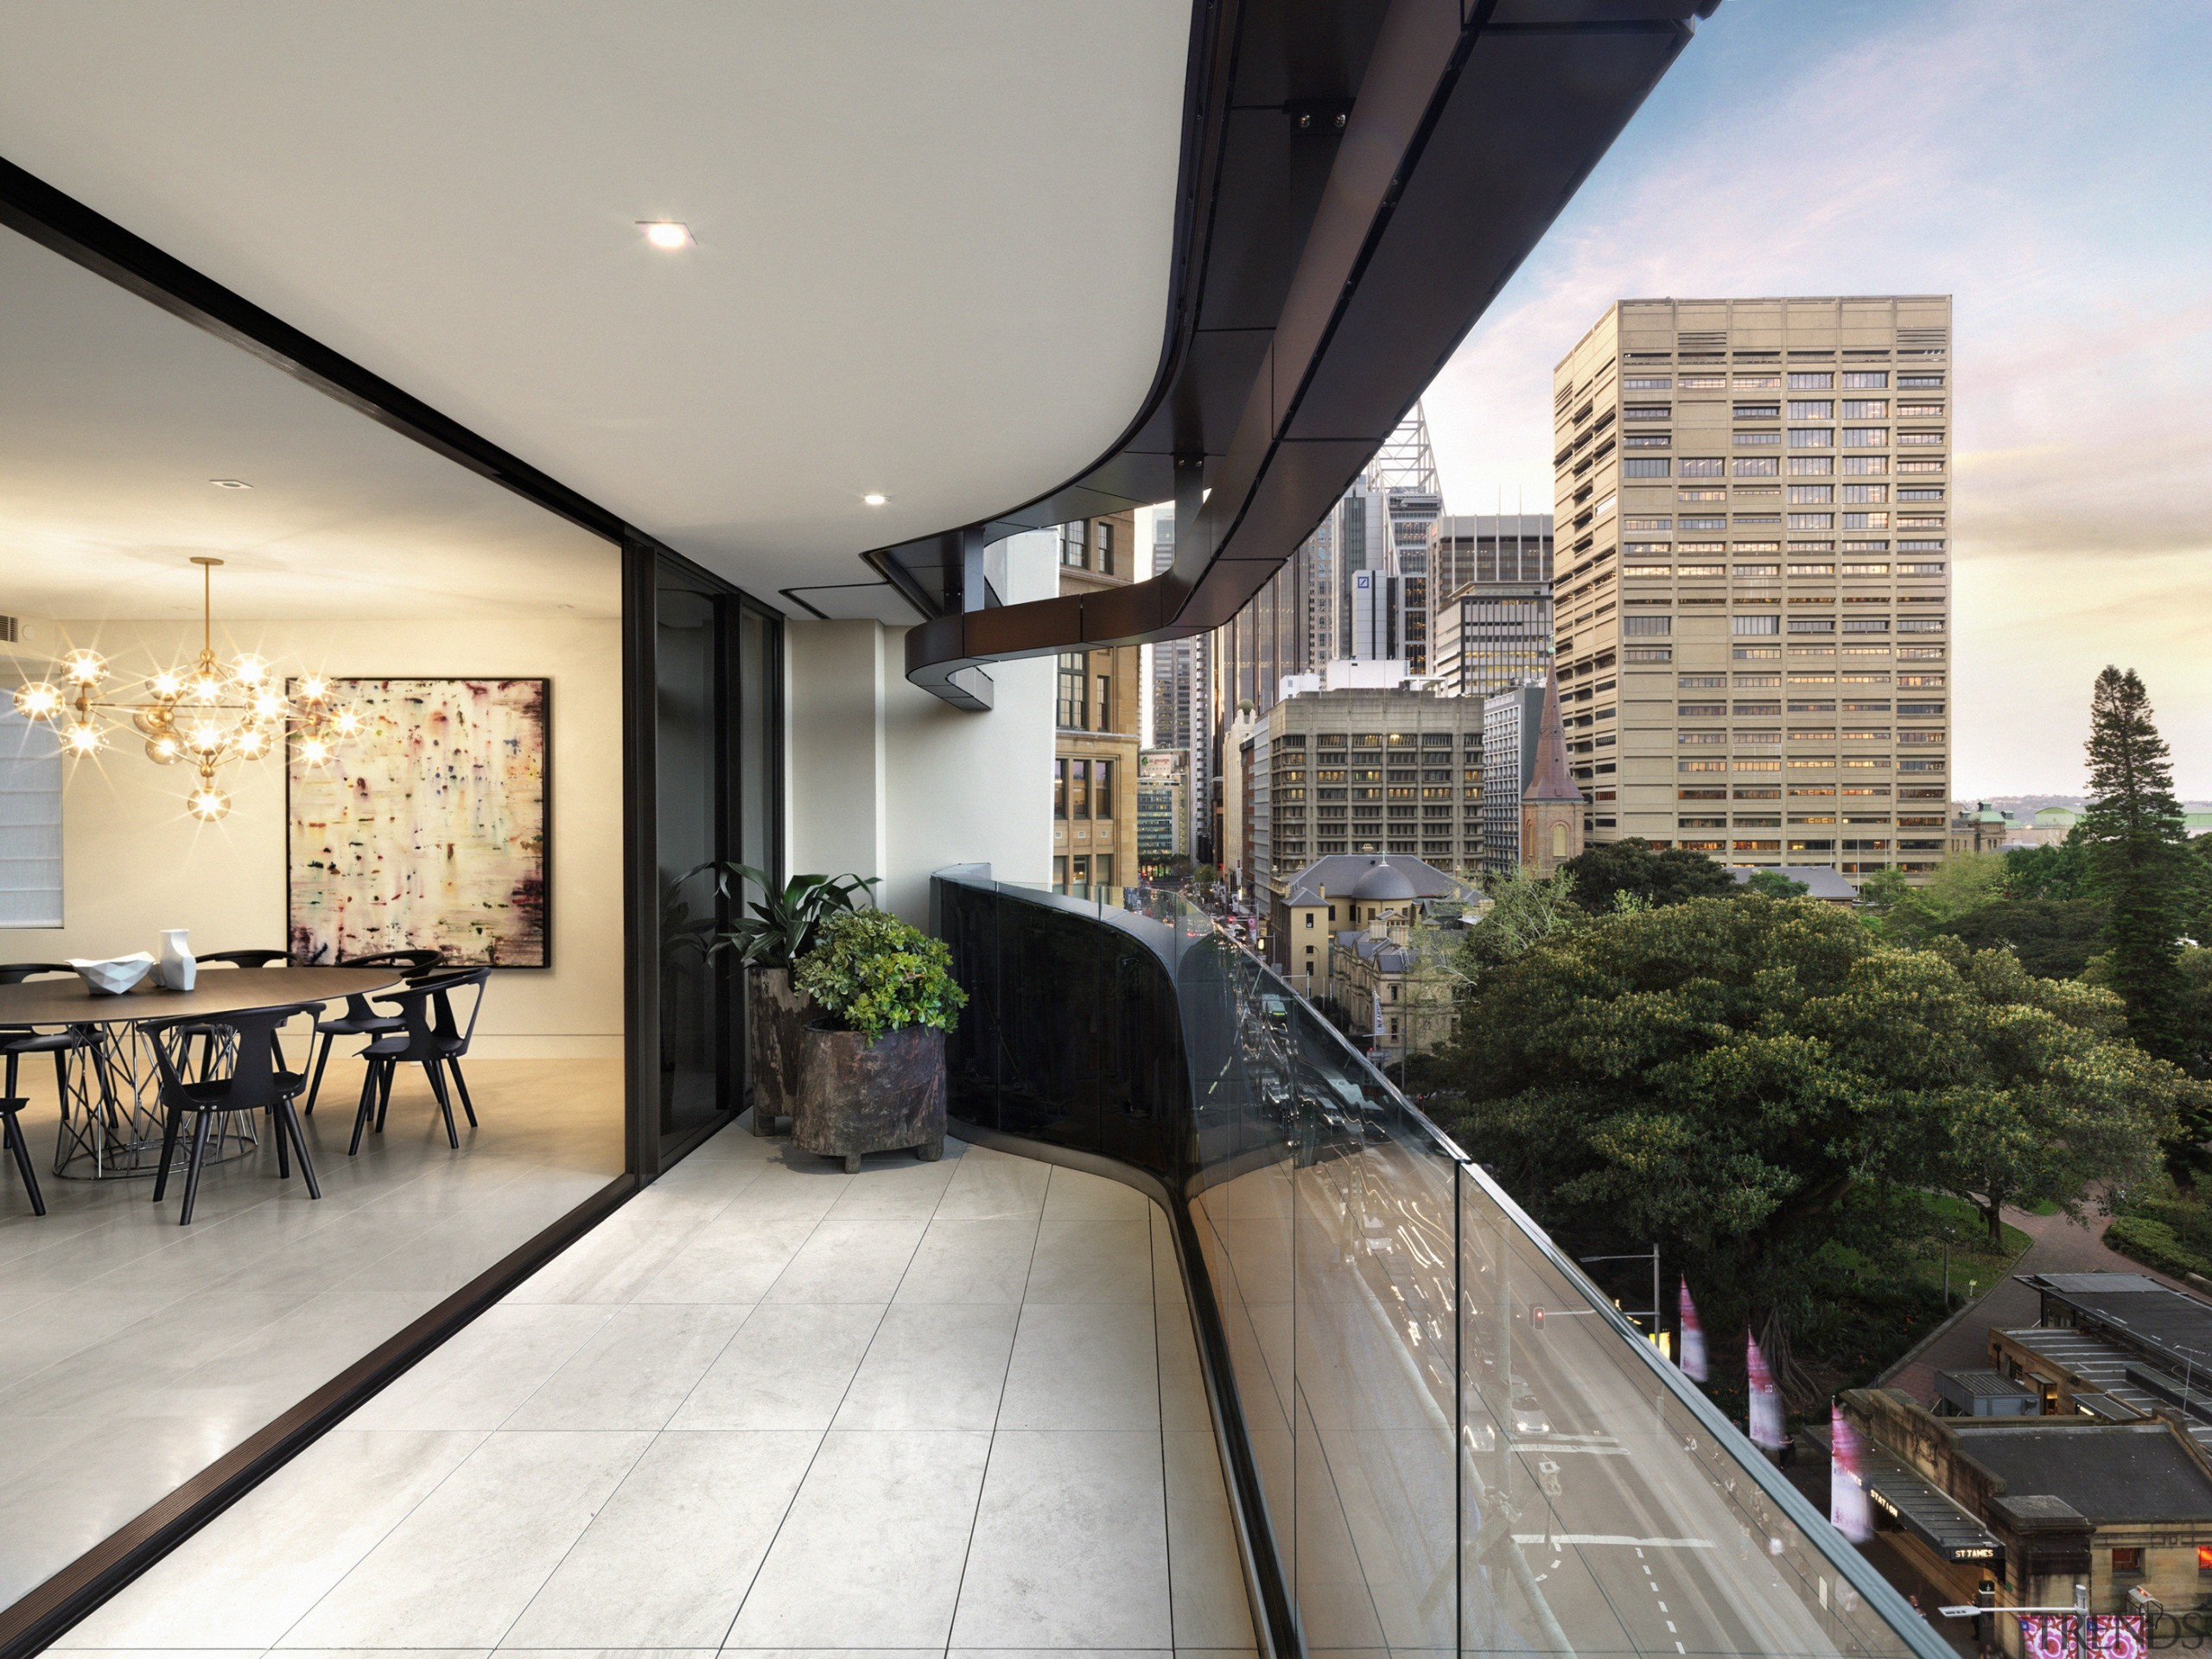 These large ranchsliding doors open up the living apartment, architecture, balcony, condominium, home, house, interior design, property, real estate, roof, gray